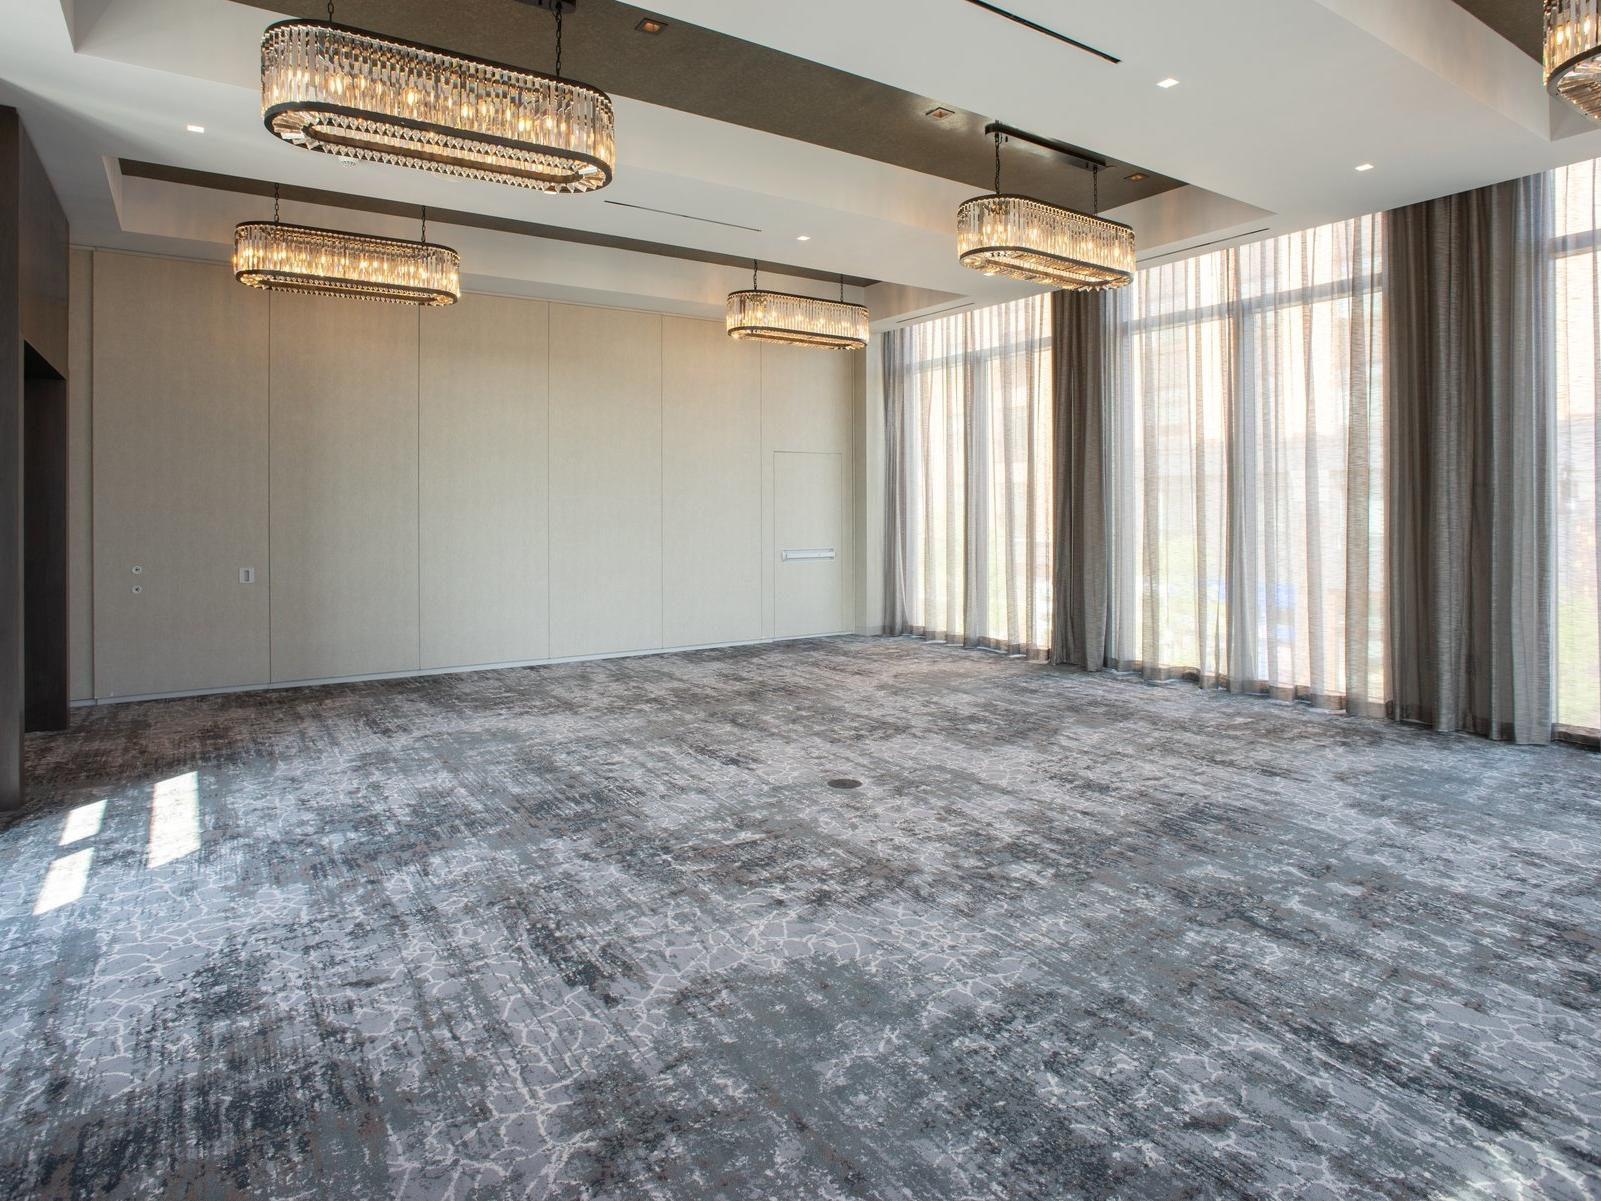 Empty meeting space with decorative lighting